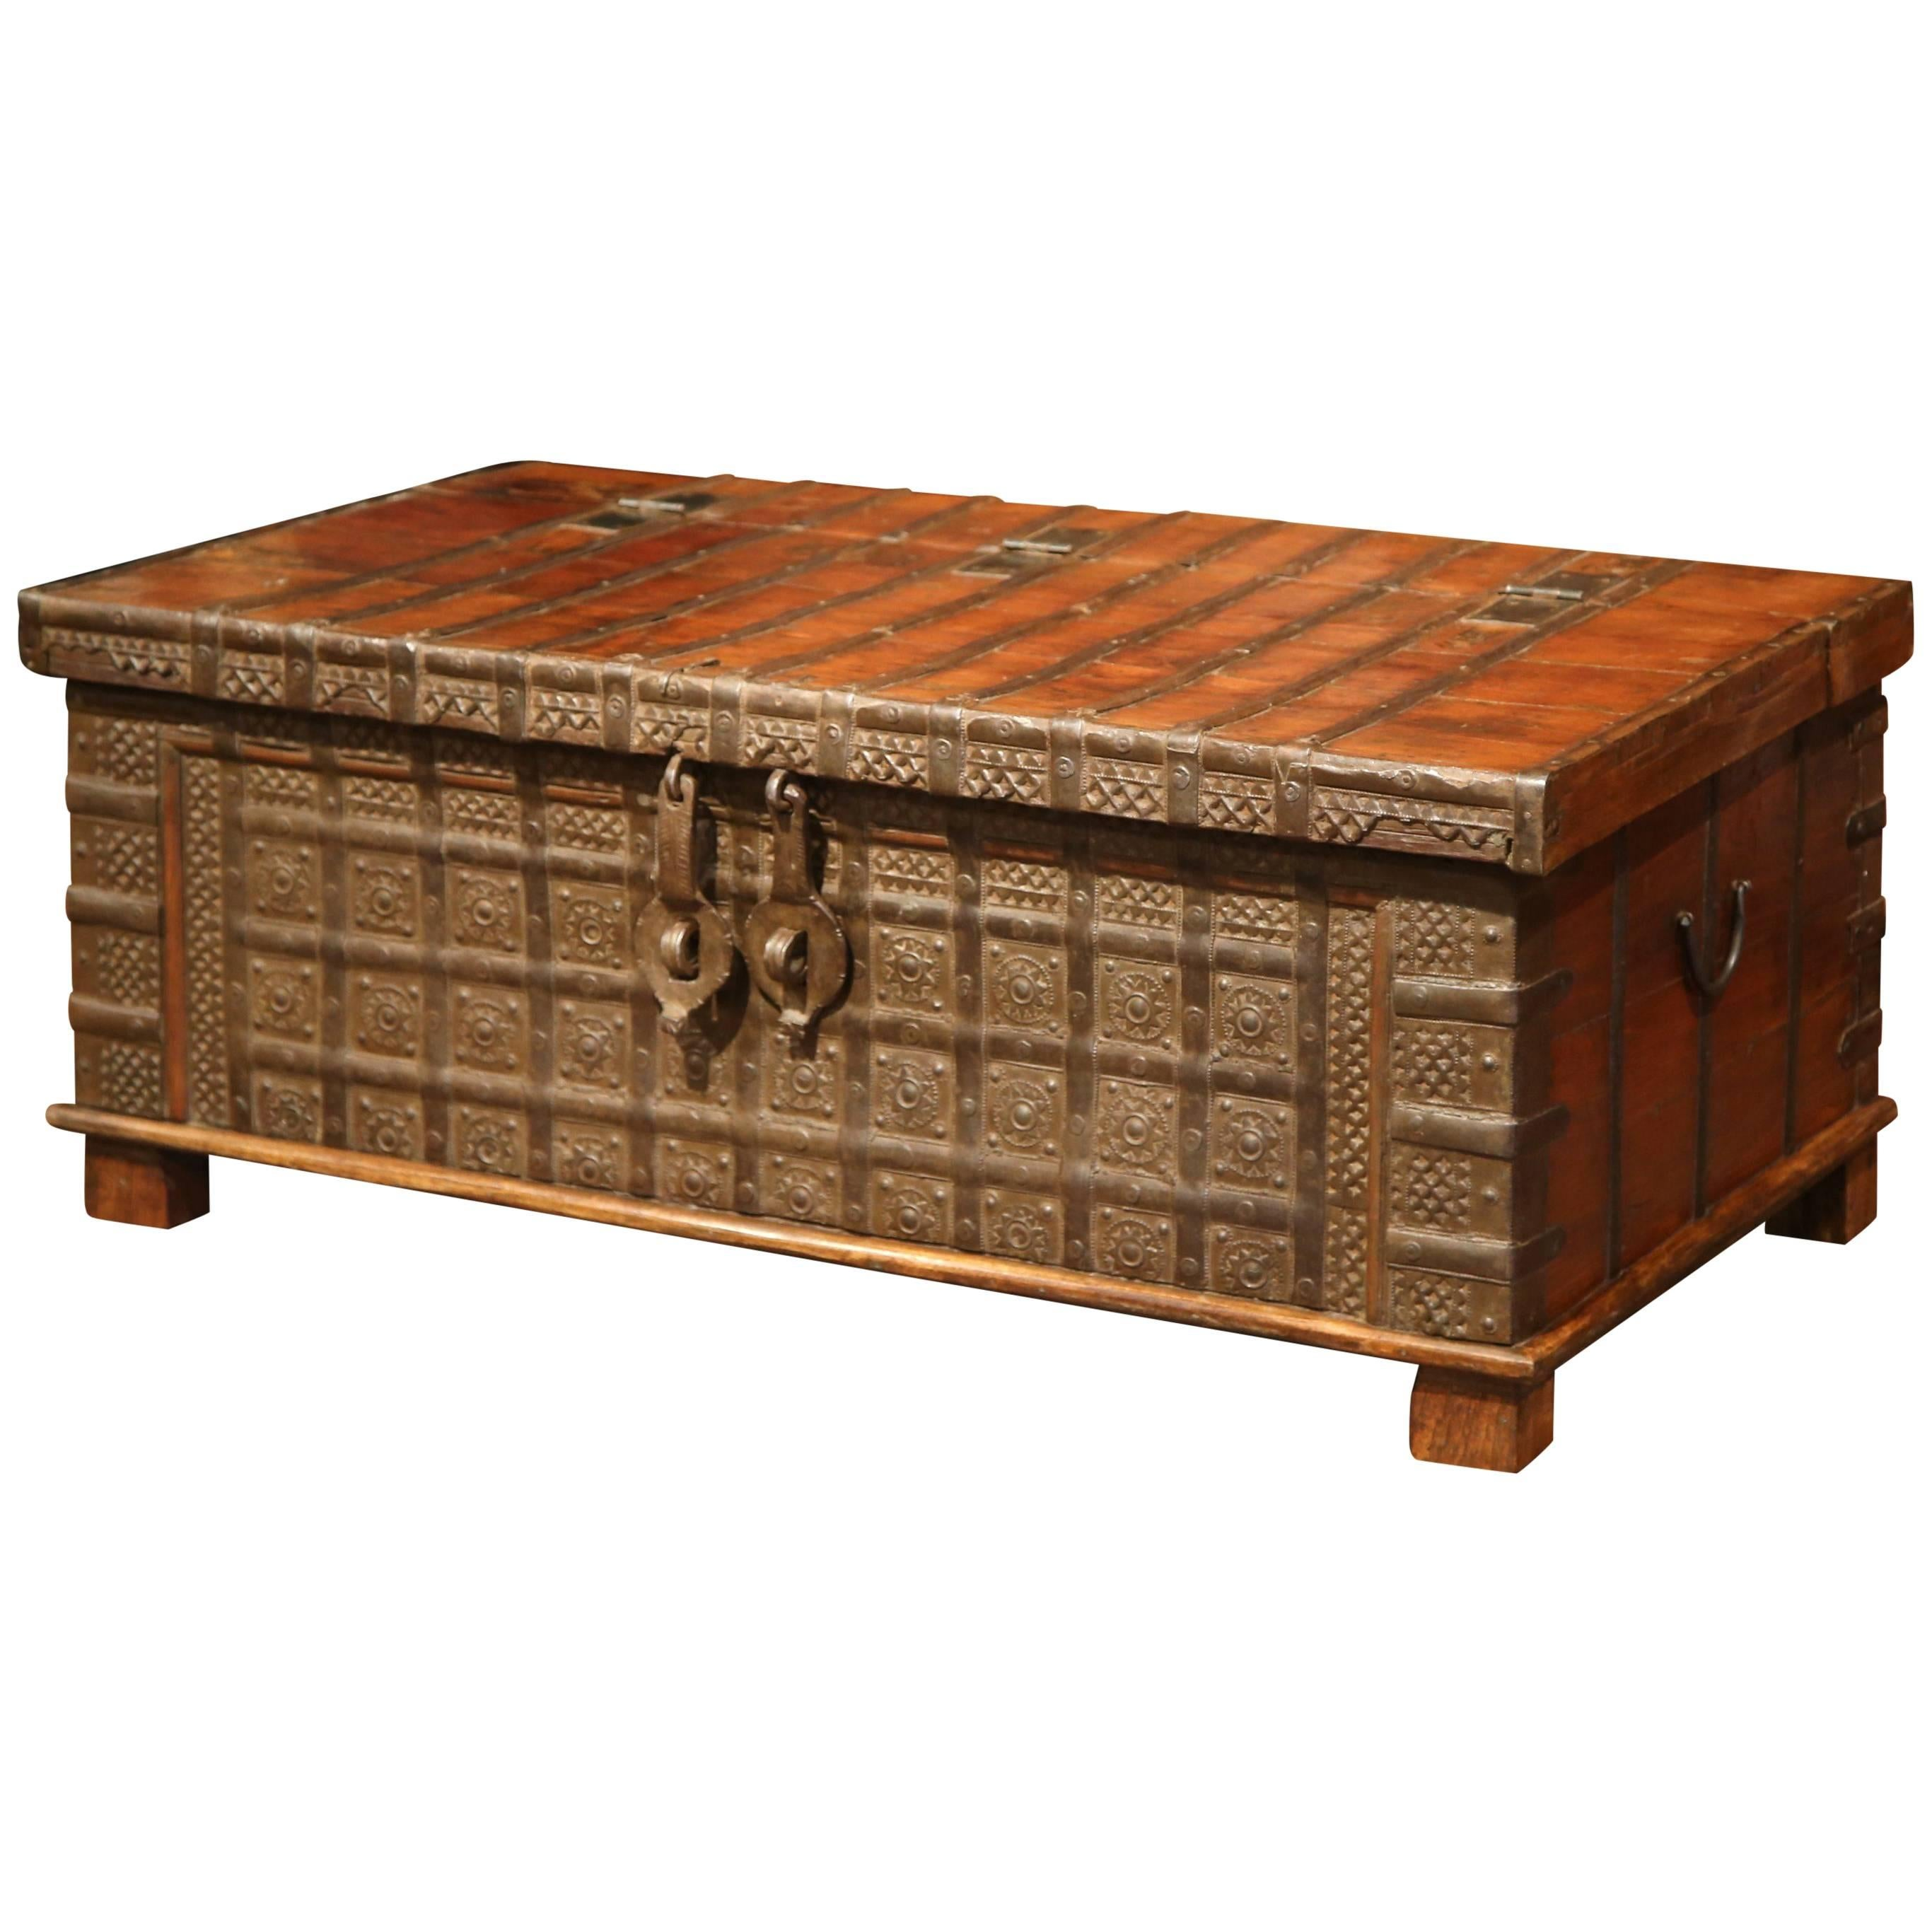 19th Century English Carved Chestnut Trunk Coffee Table With Heavy Hardware  For Sale